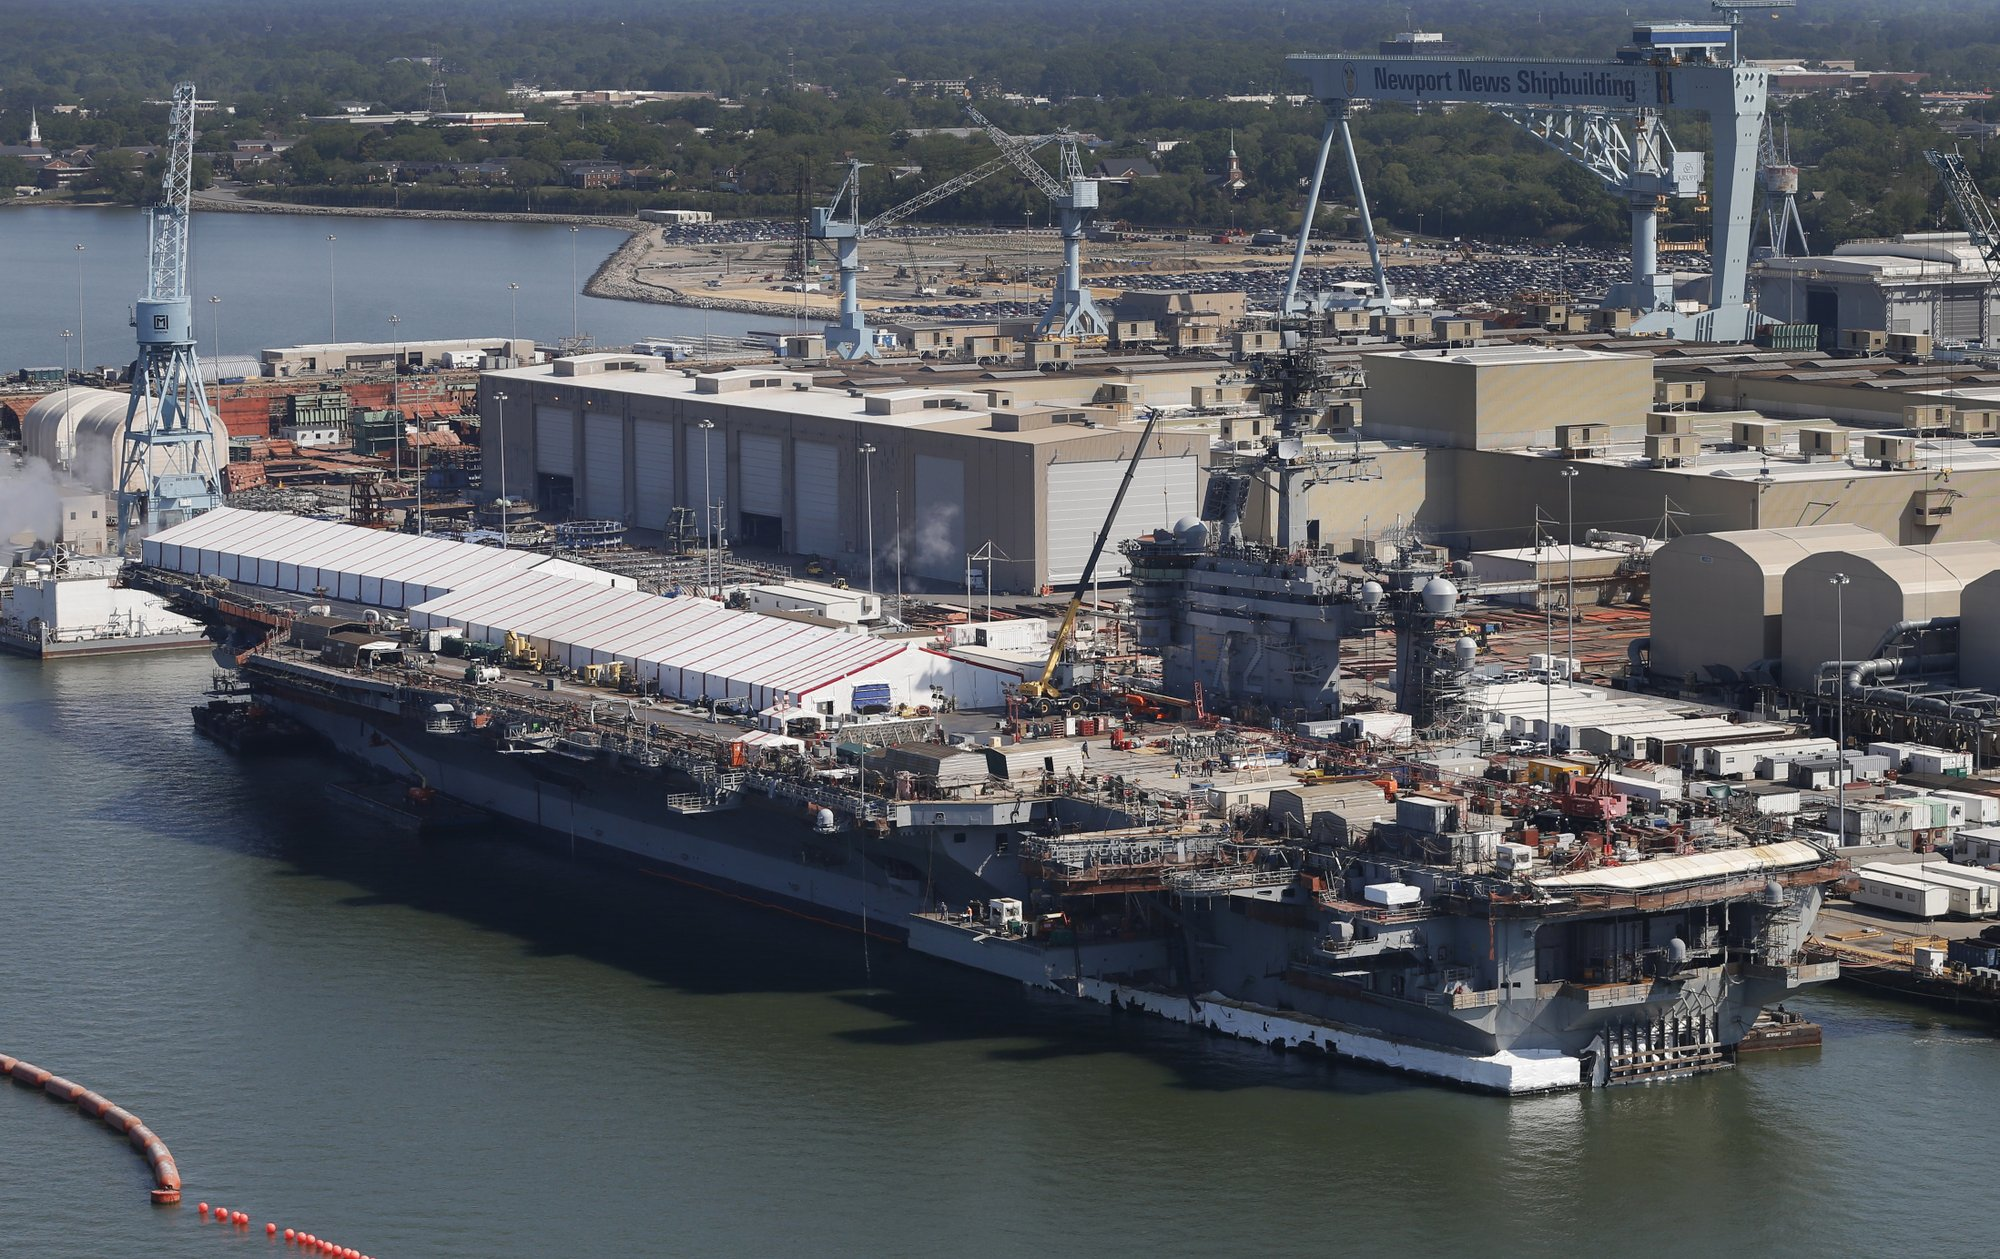 US sends carrier to Mideast, citing unspecific Iran threats